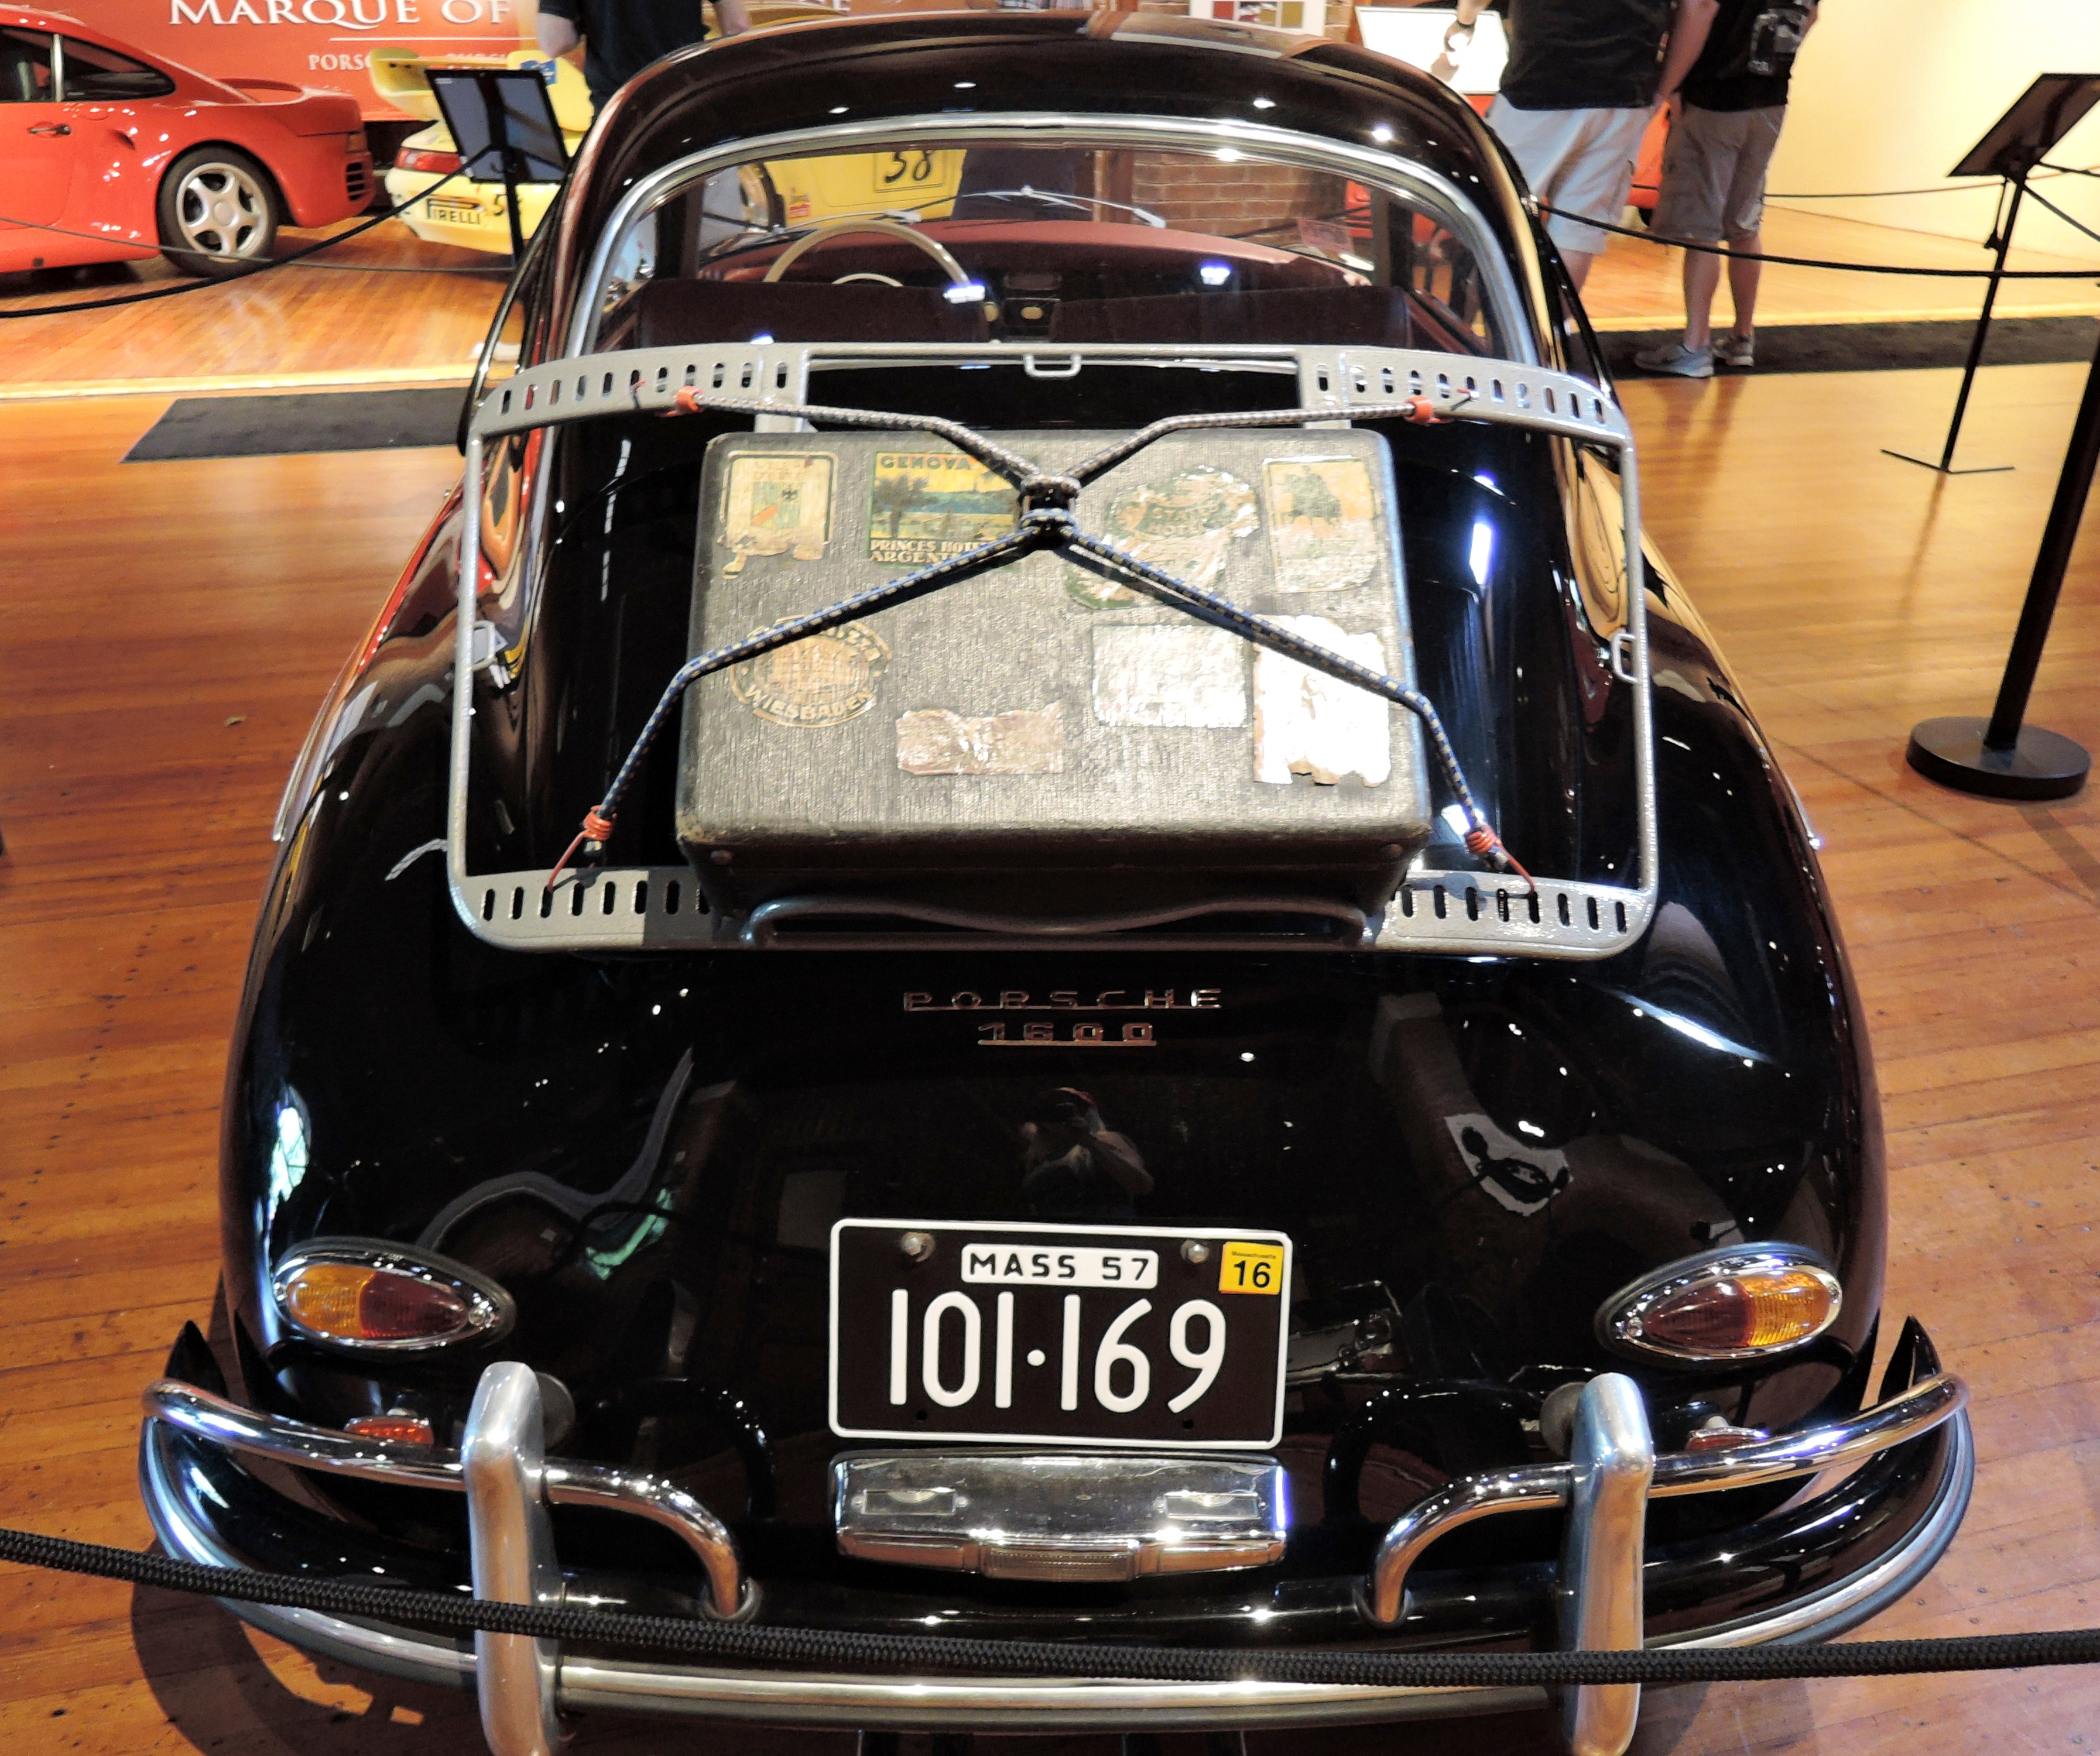 black 1957 Porsche 356A 1600 Reutter Coupe - cars and coffee at larz